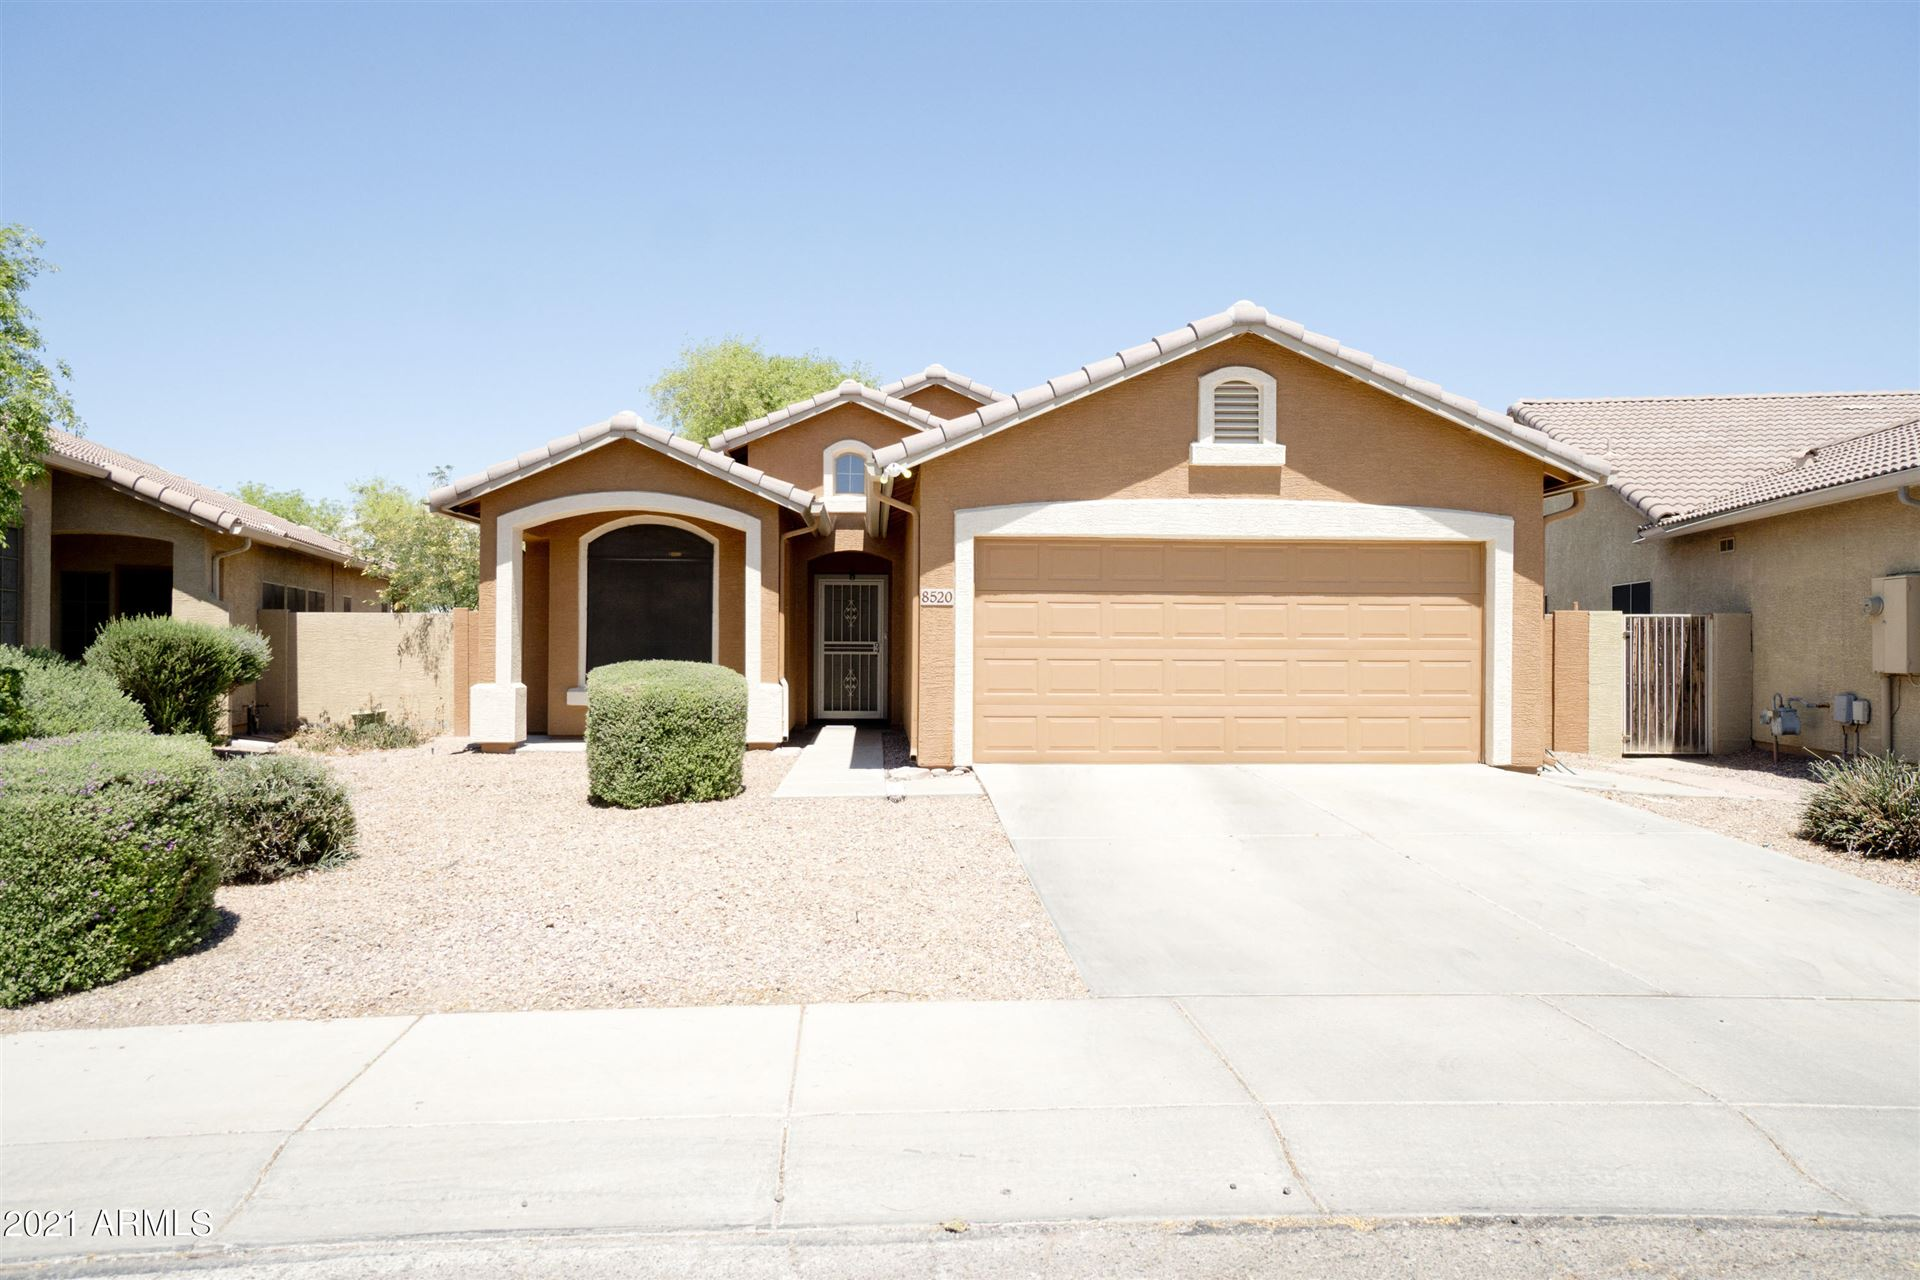 Photo of 8520 W Papago Street, Tolleson, AZ 85353 (MLS # 6229063)